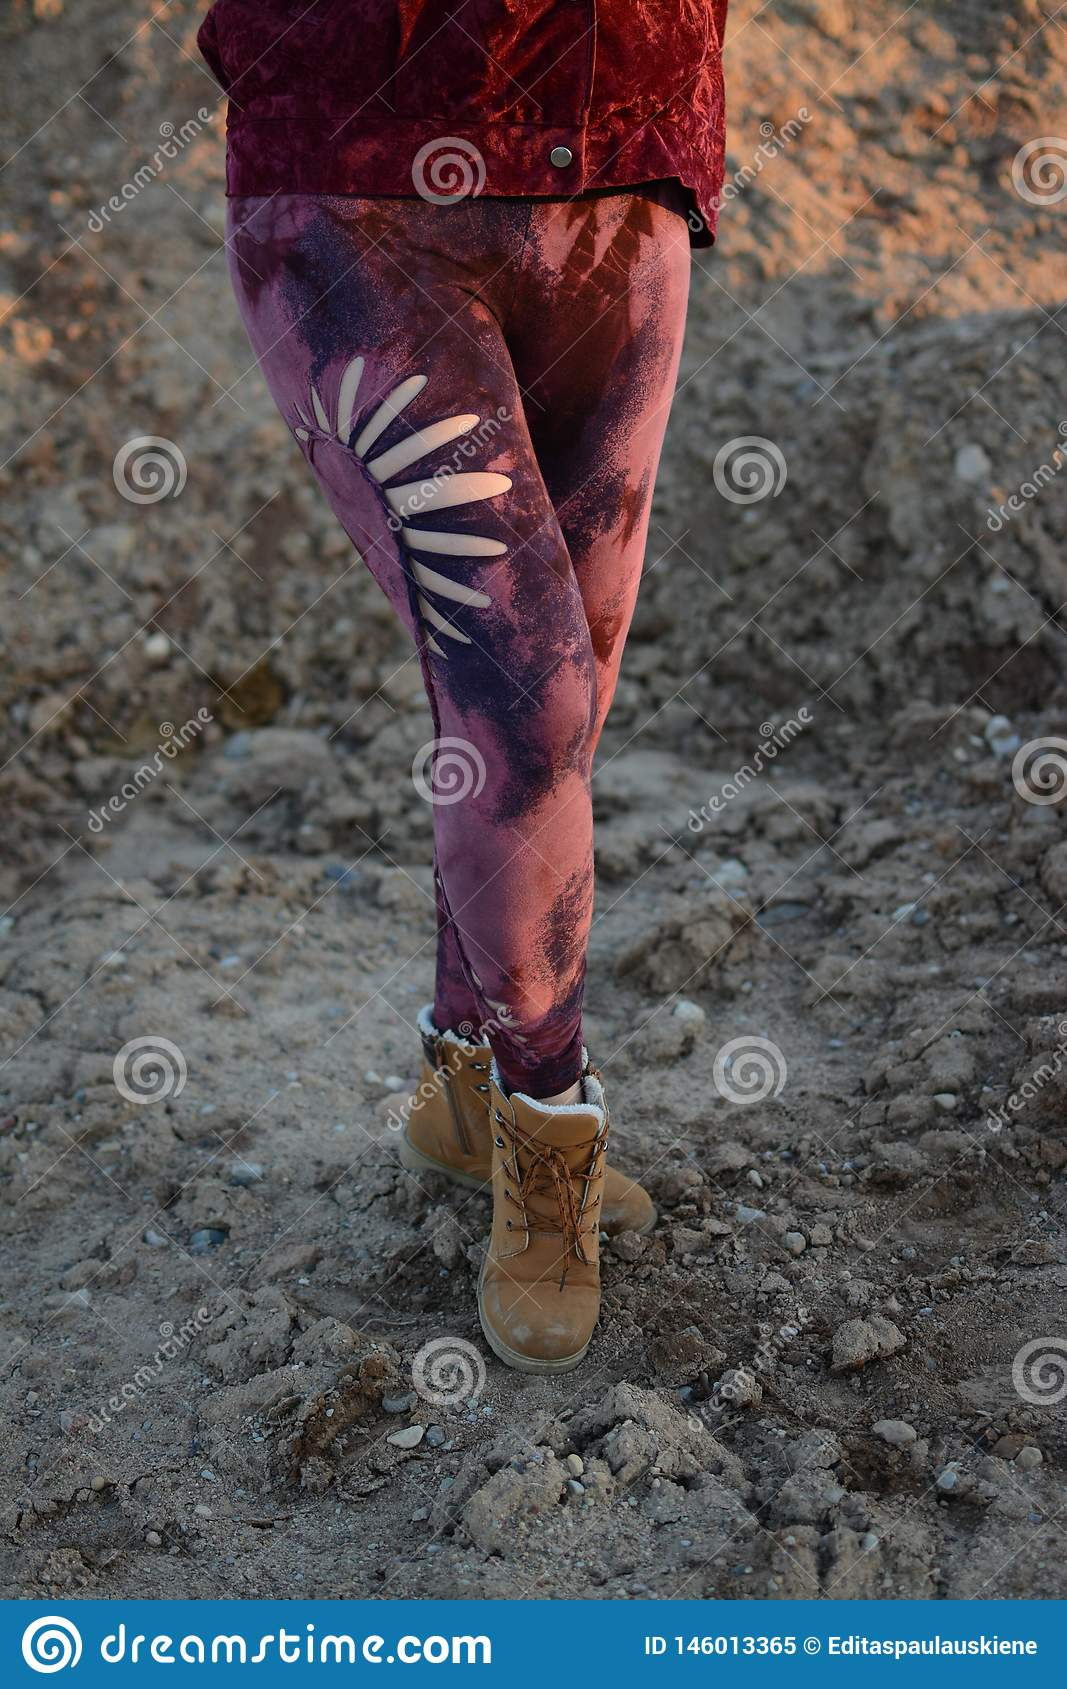 Legs in beautiful and unique cut out tights, festival fashion, golden hour, warm evening